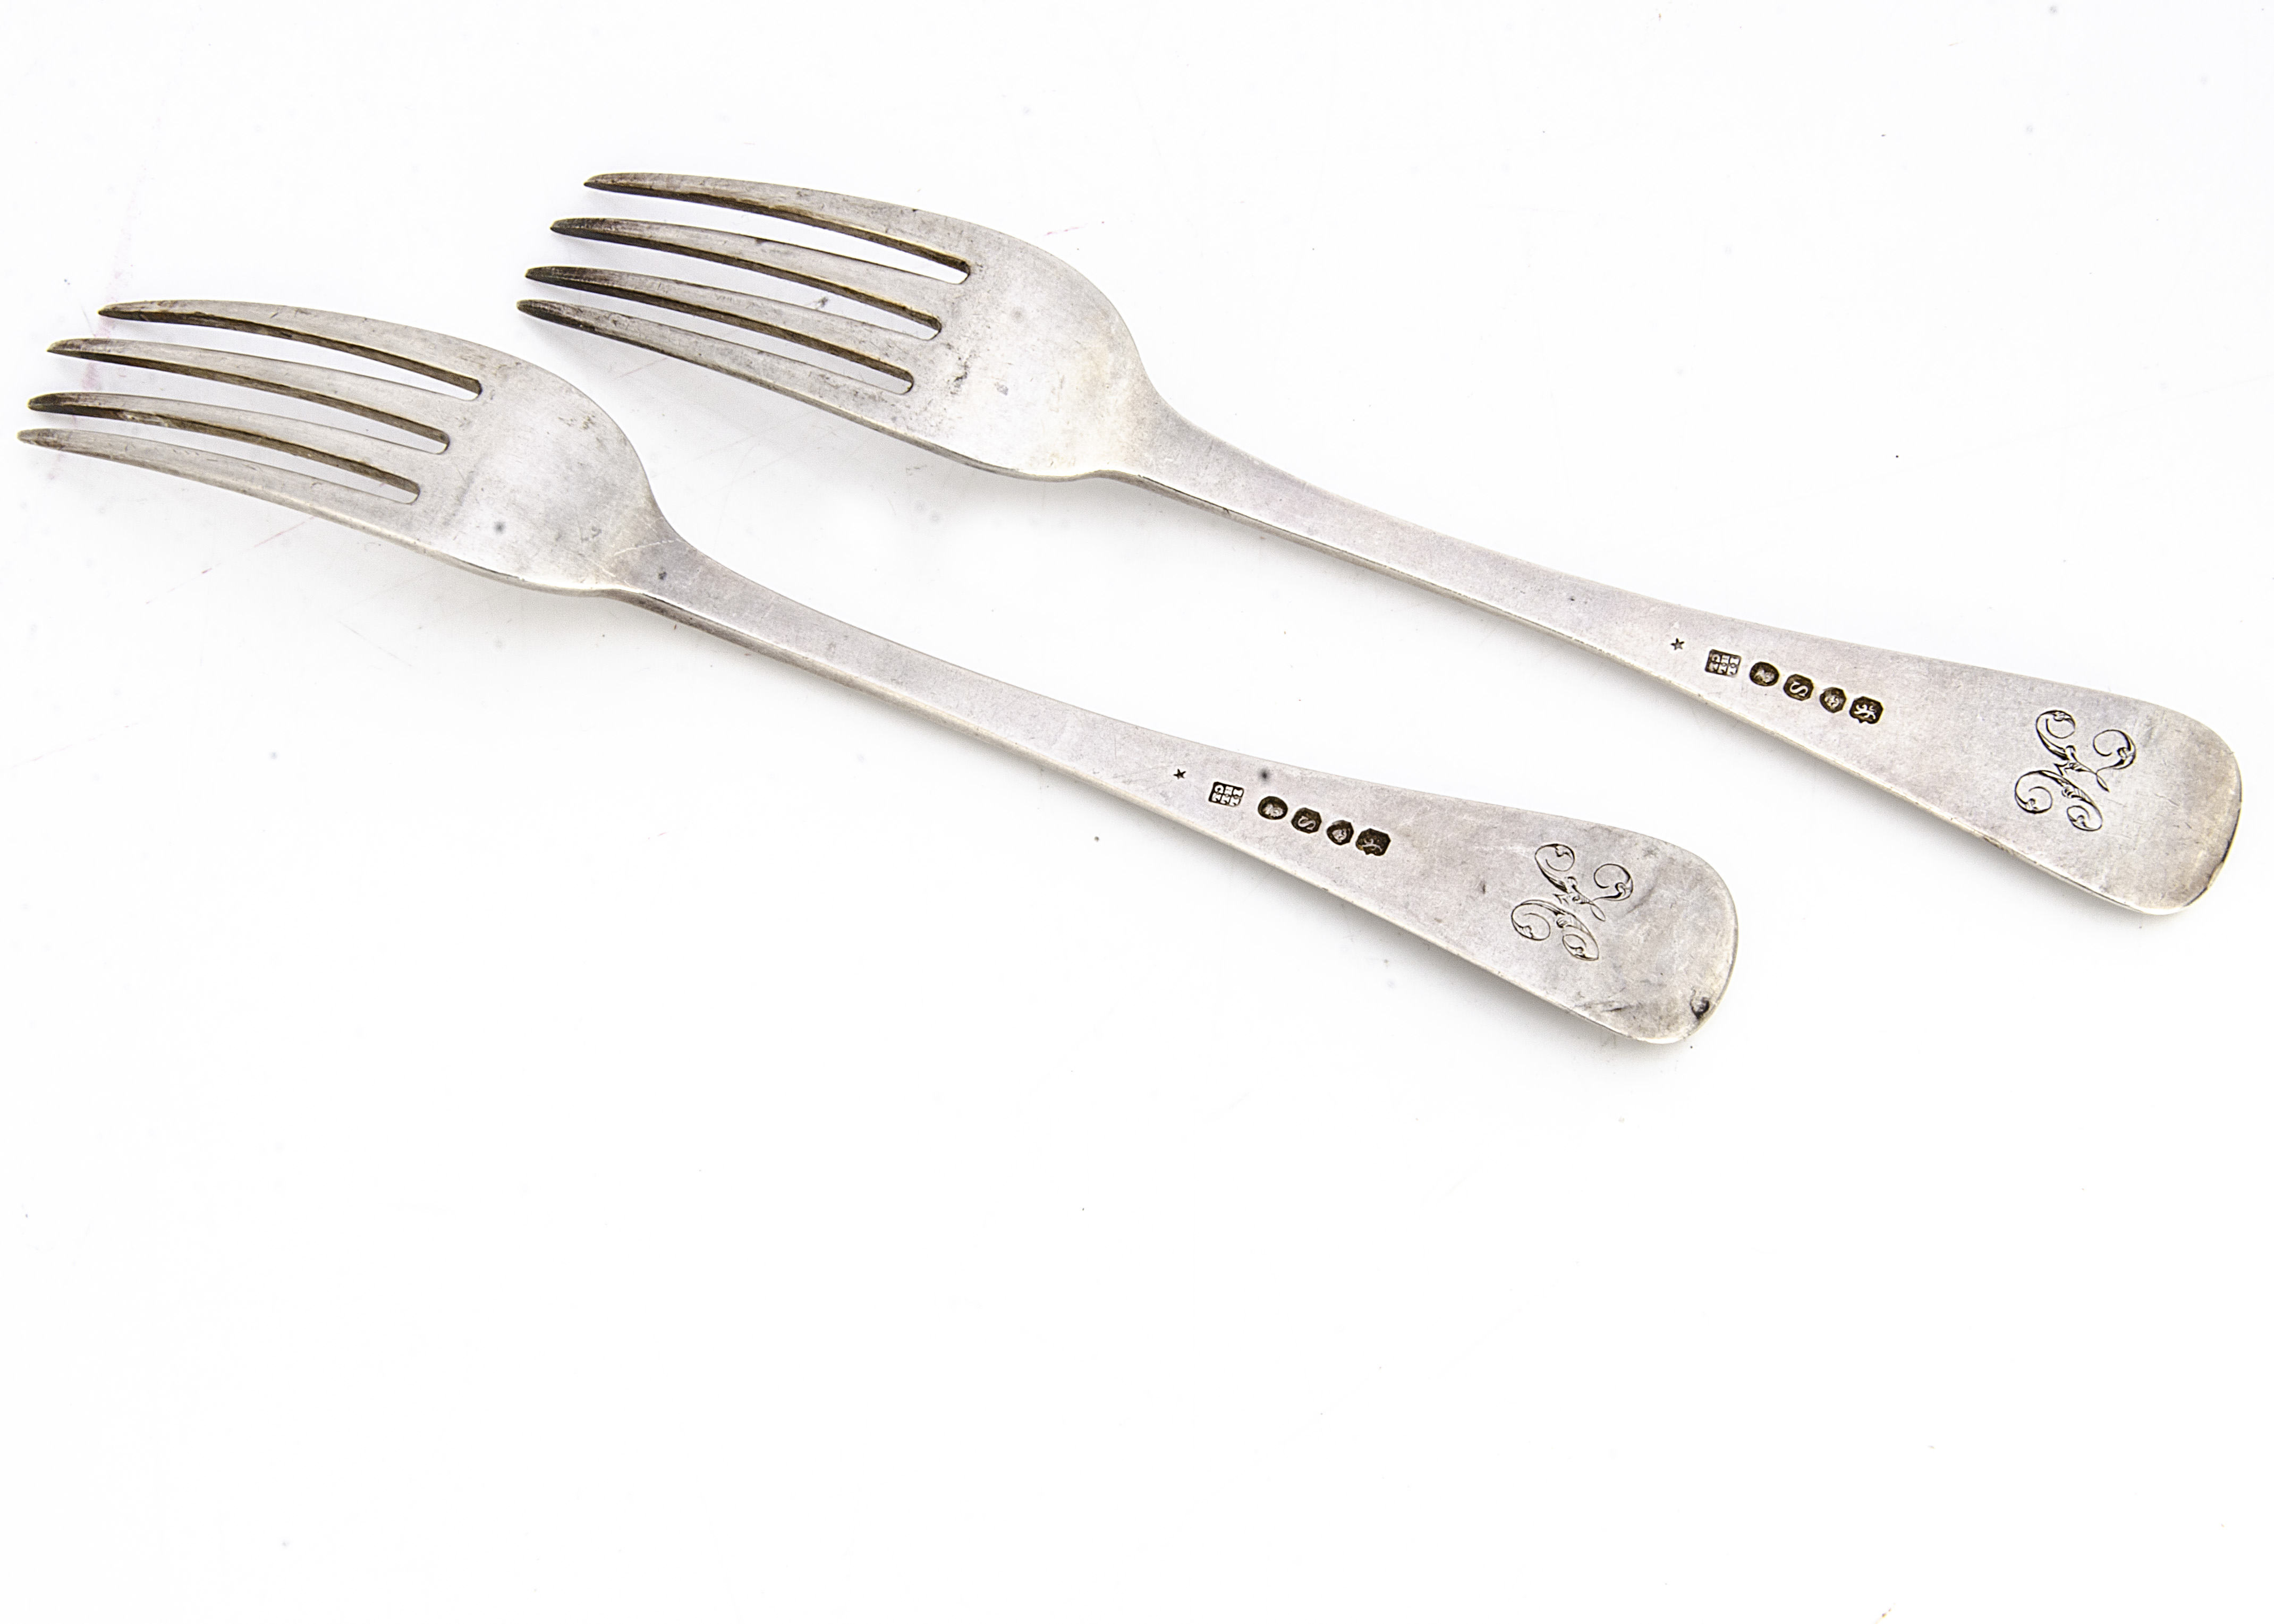 A pair of William IV silver forks by John & Henry & Charles Lias, old English pattern with engrved H - Image 2 of 2